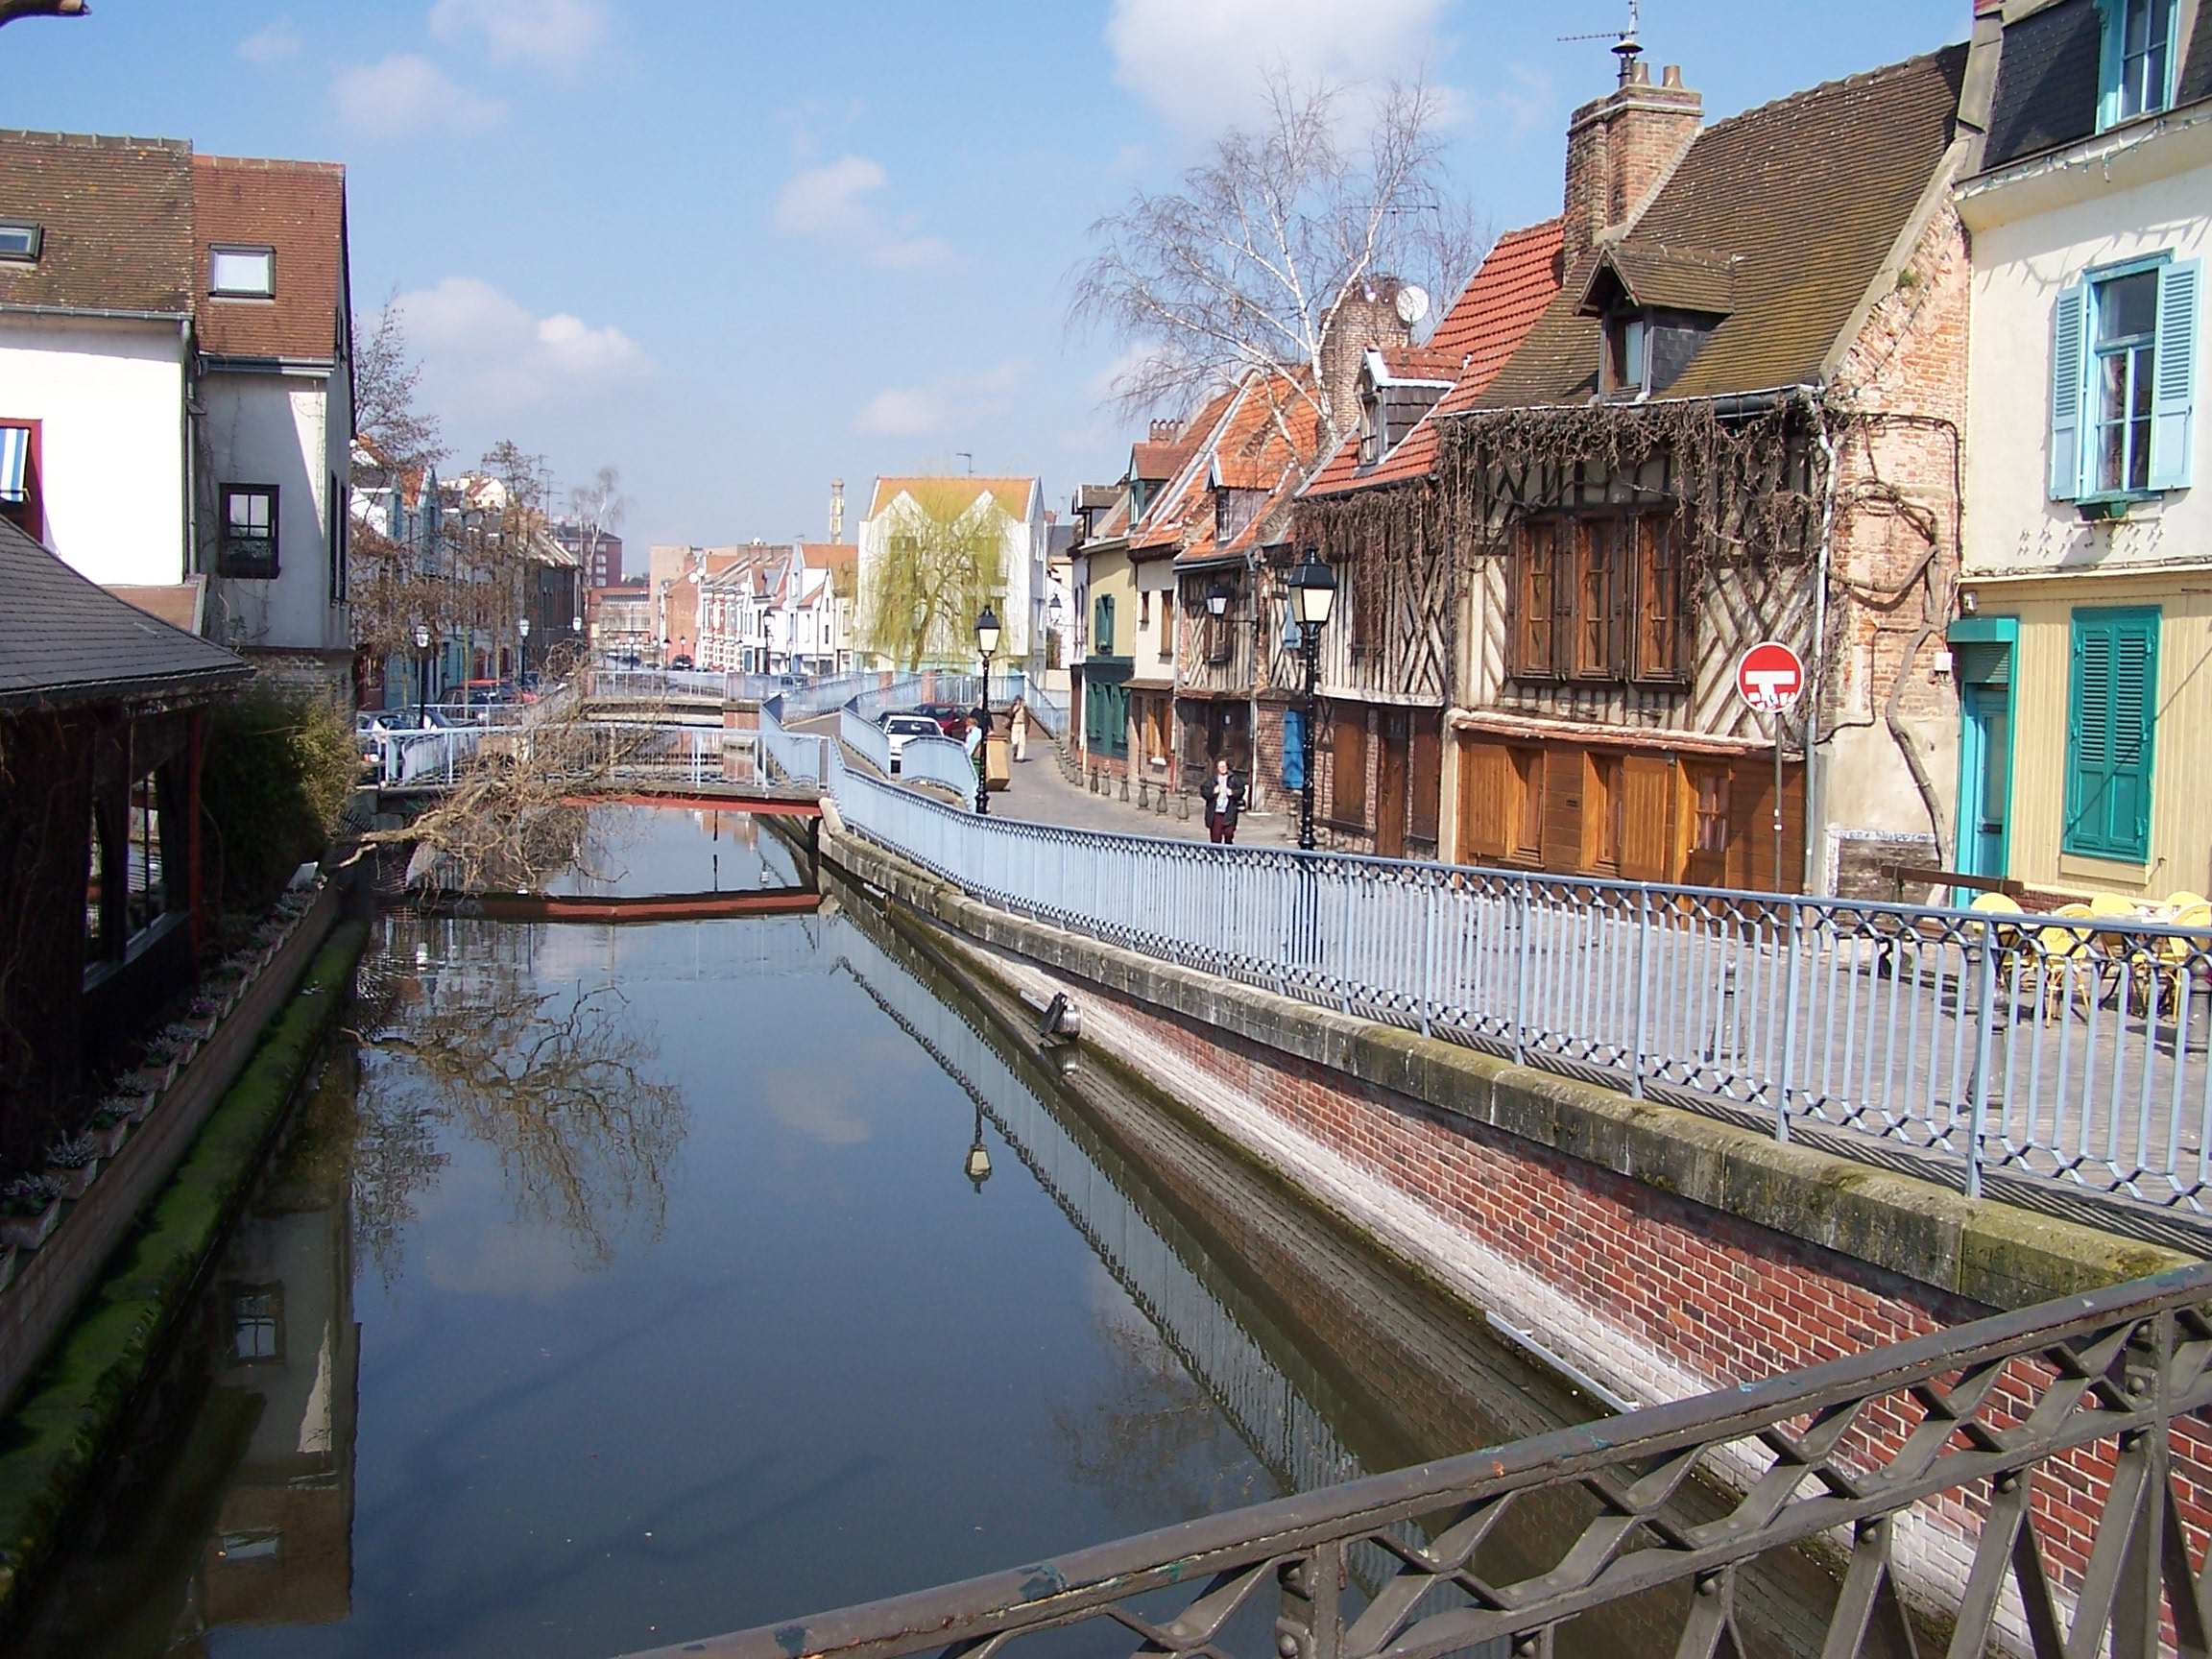 Amiens France  city photos gallery : Fichier d'origine ‎ 2 304 × 1 728 pixels, taille du fichier : 1,08 ...